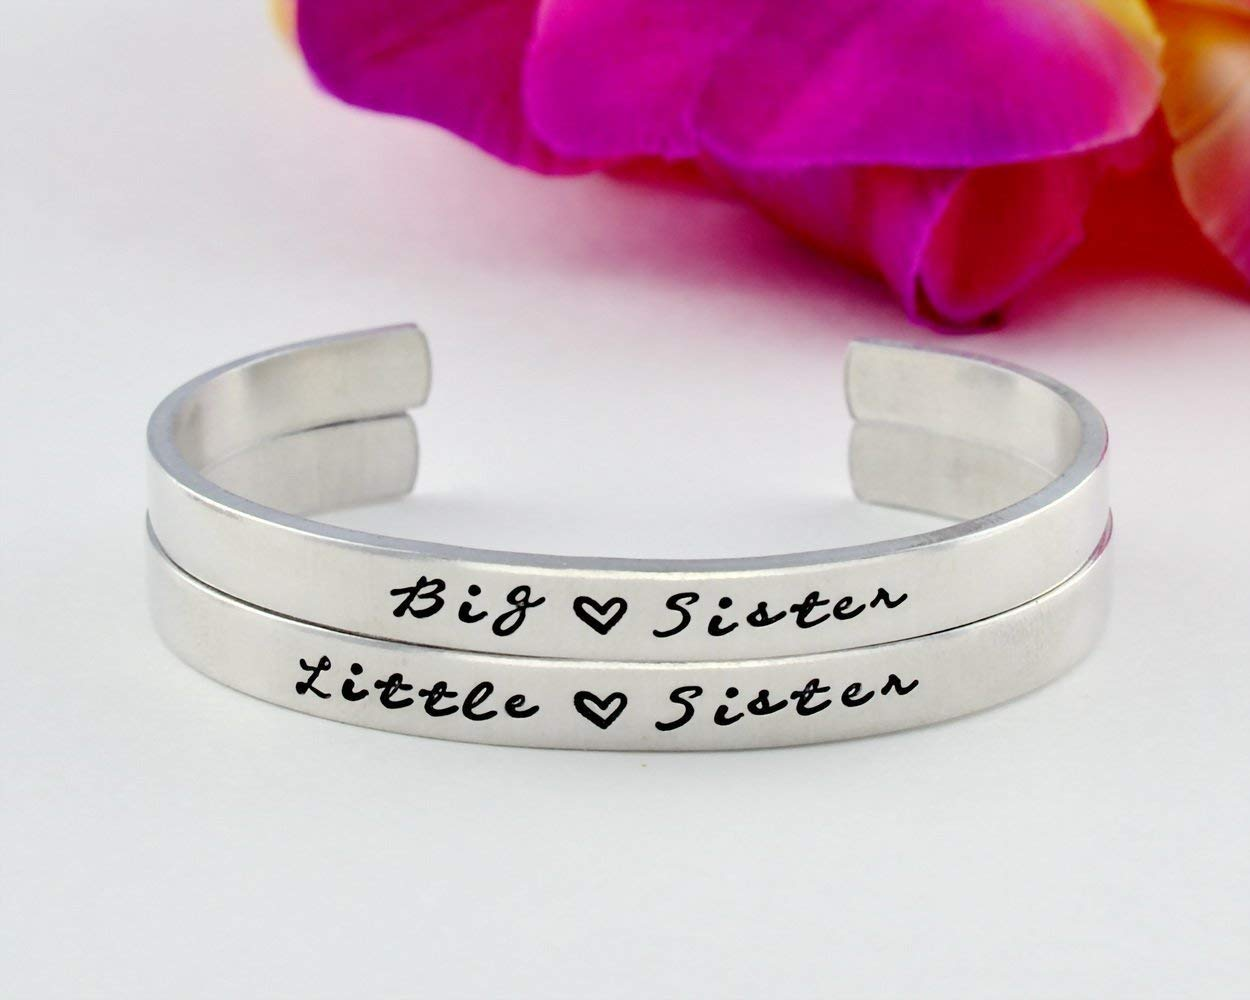 Big Sister Little Sister - Hand Stamped Aluminum Cuff Bracelets Set of 2, Big LIL Sis Sisters Jewelry, Sorority Best Friends BFF Personalized Gifts